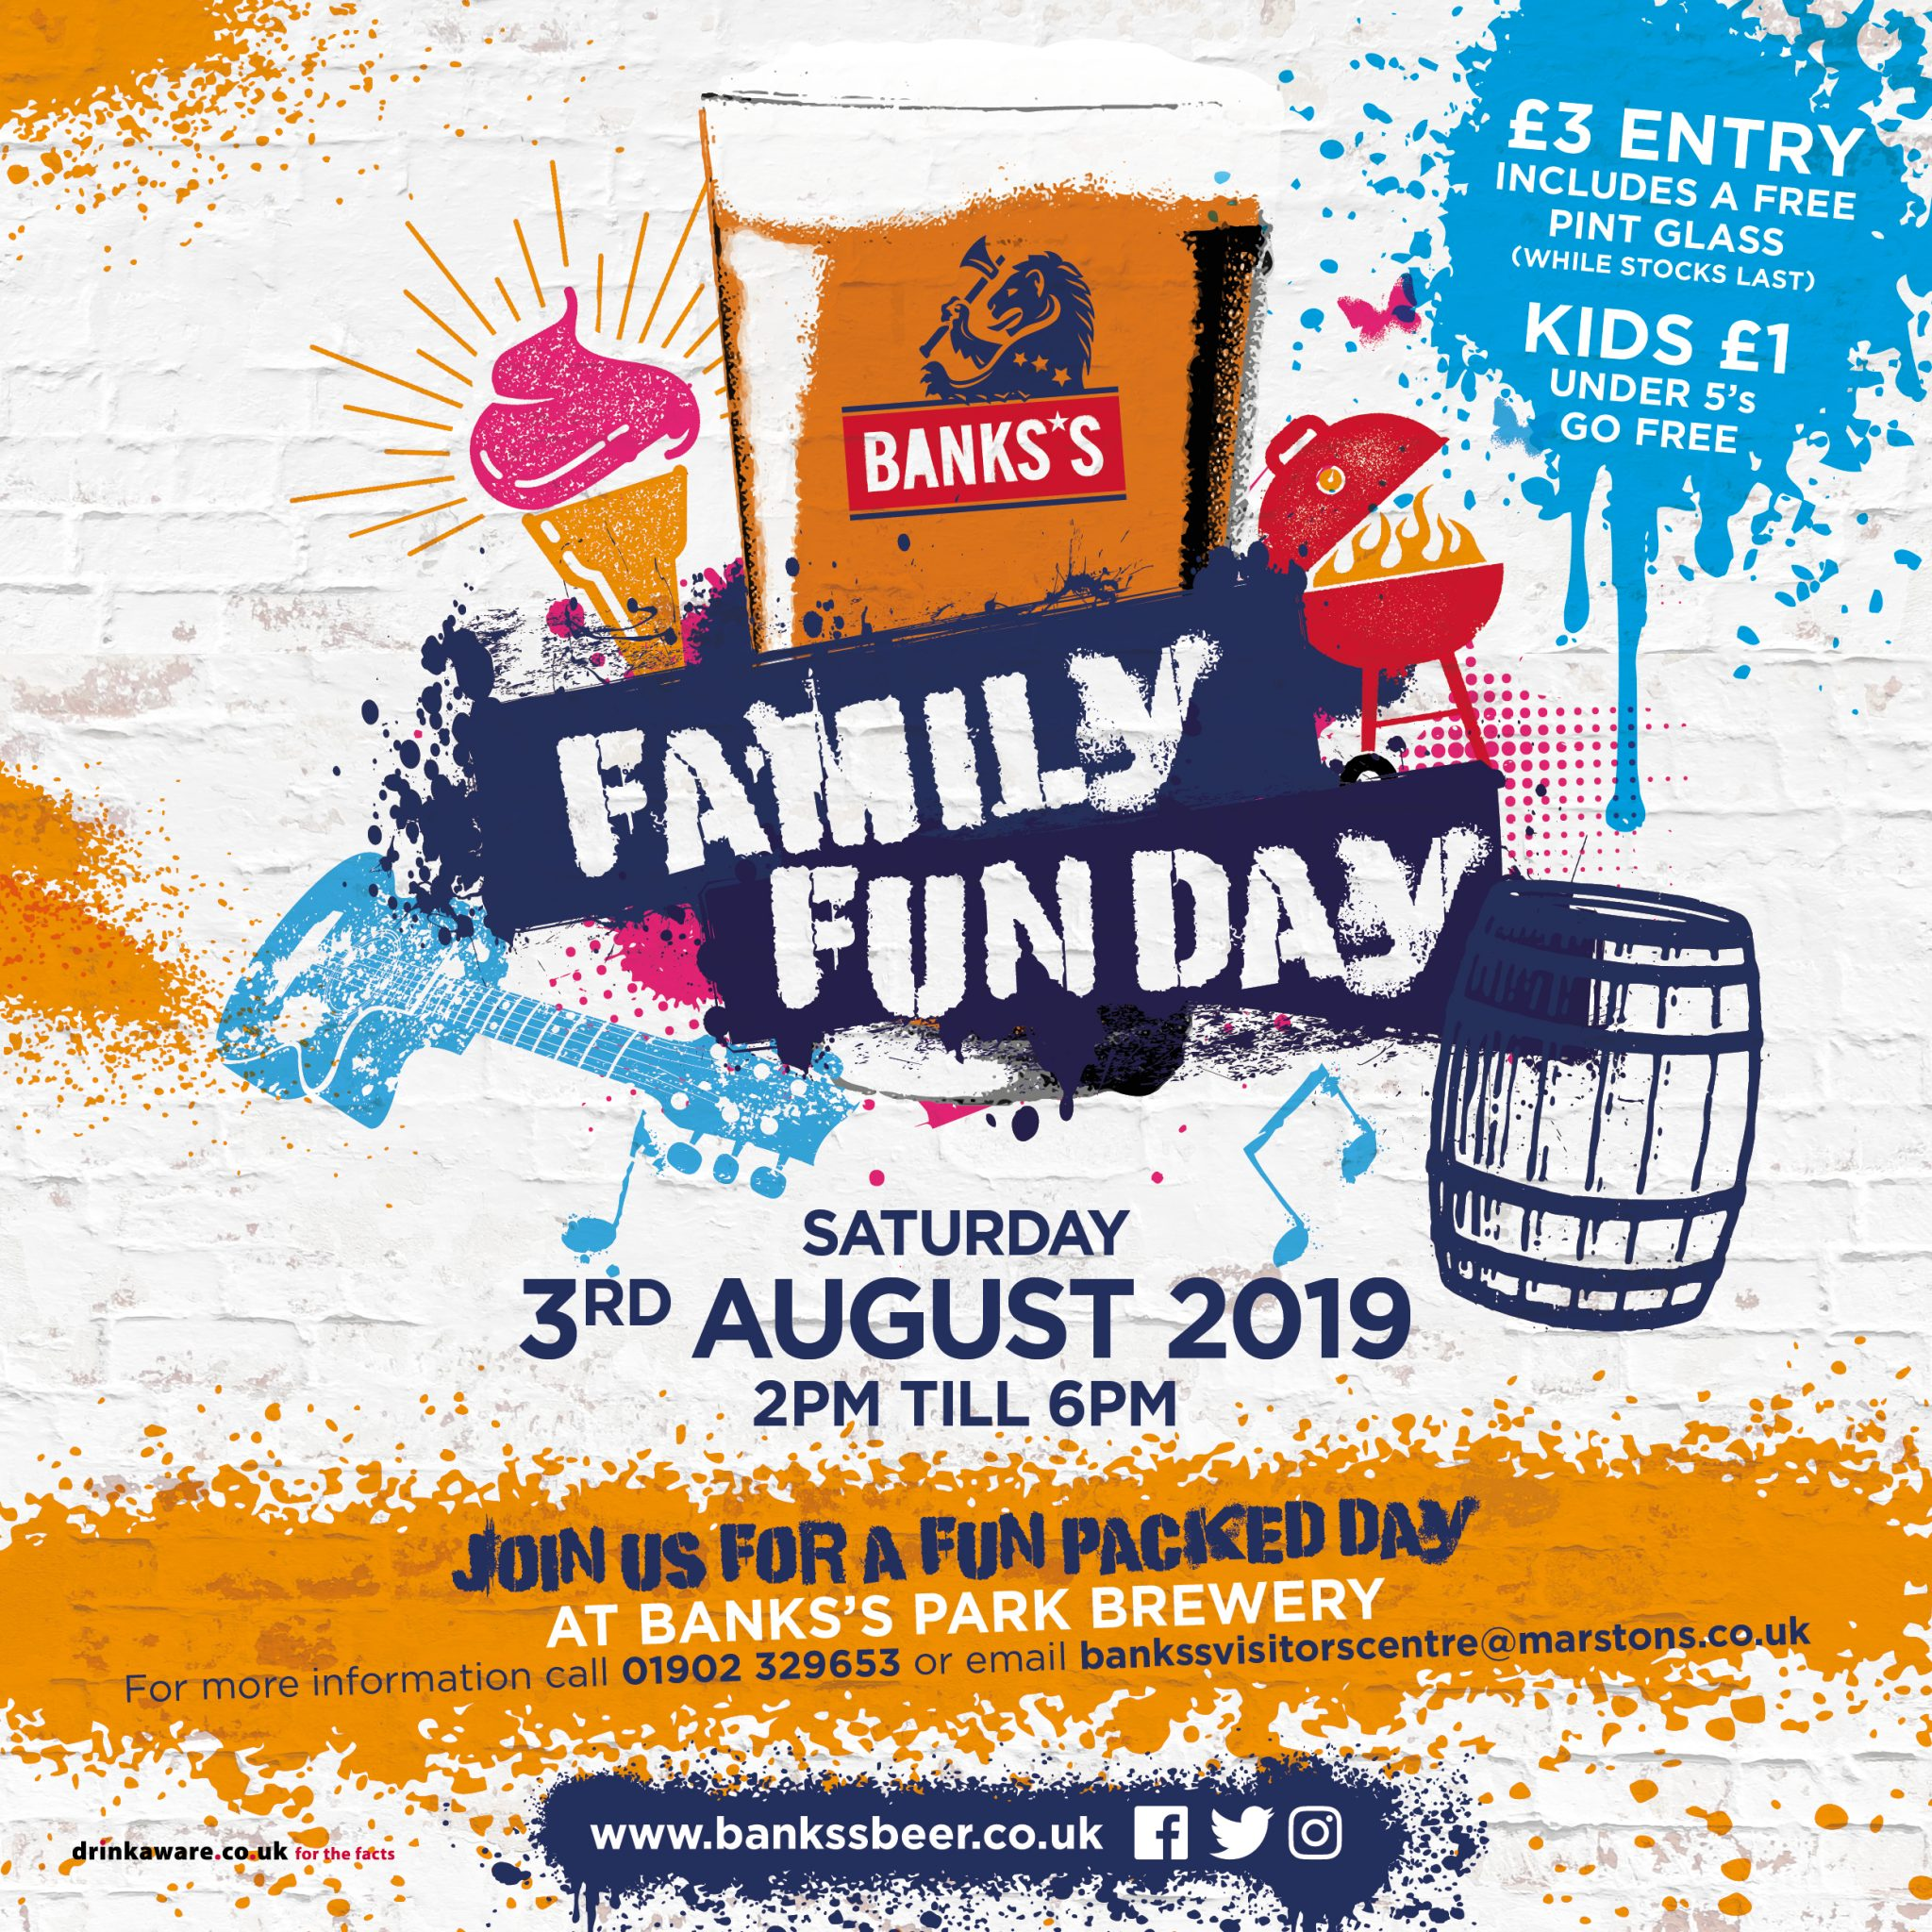 Banks's Family Fun Day